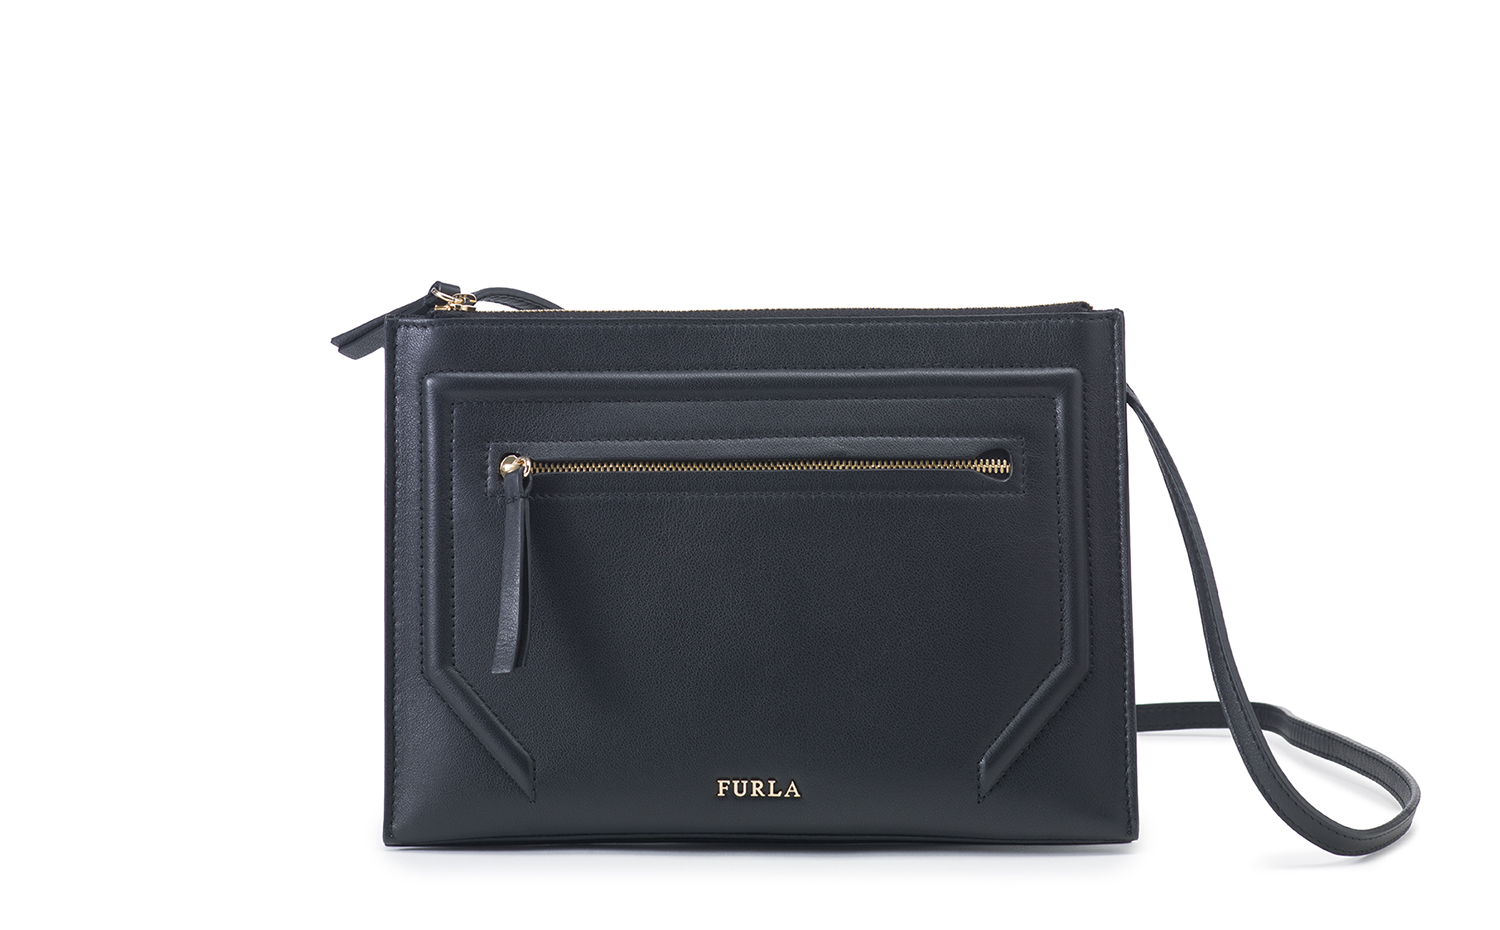 FURLA ALICE leather crossbody bag Onyx